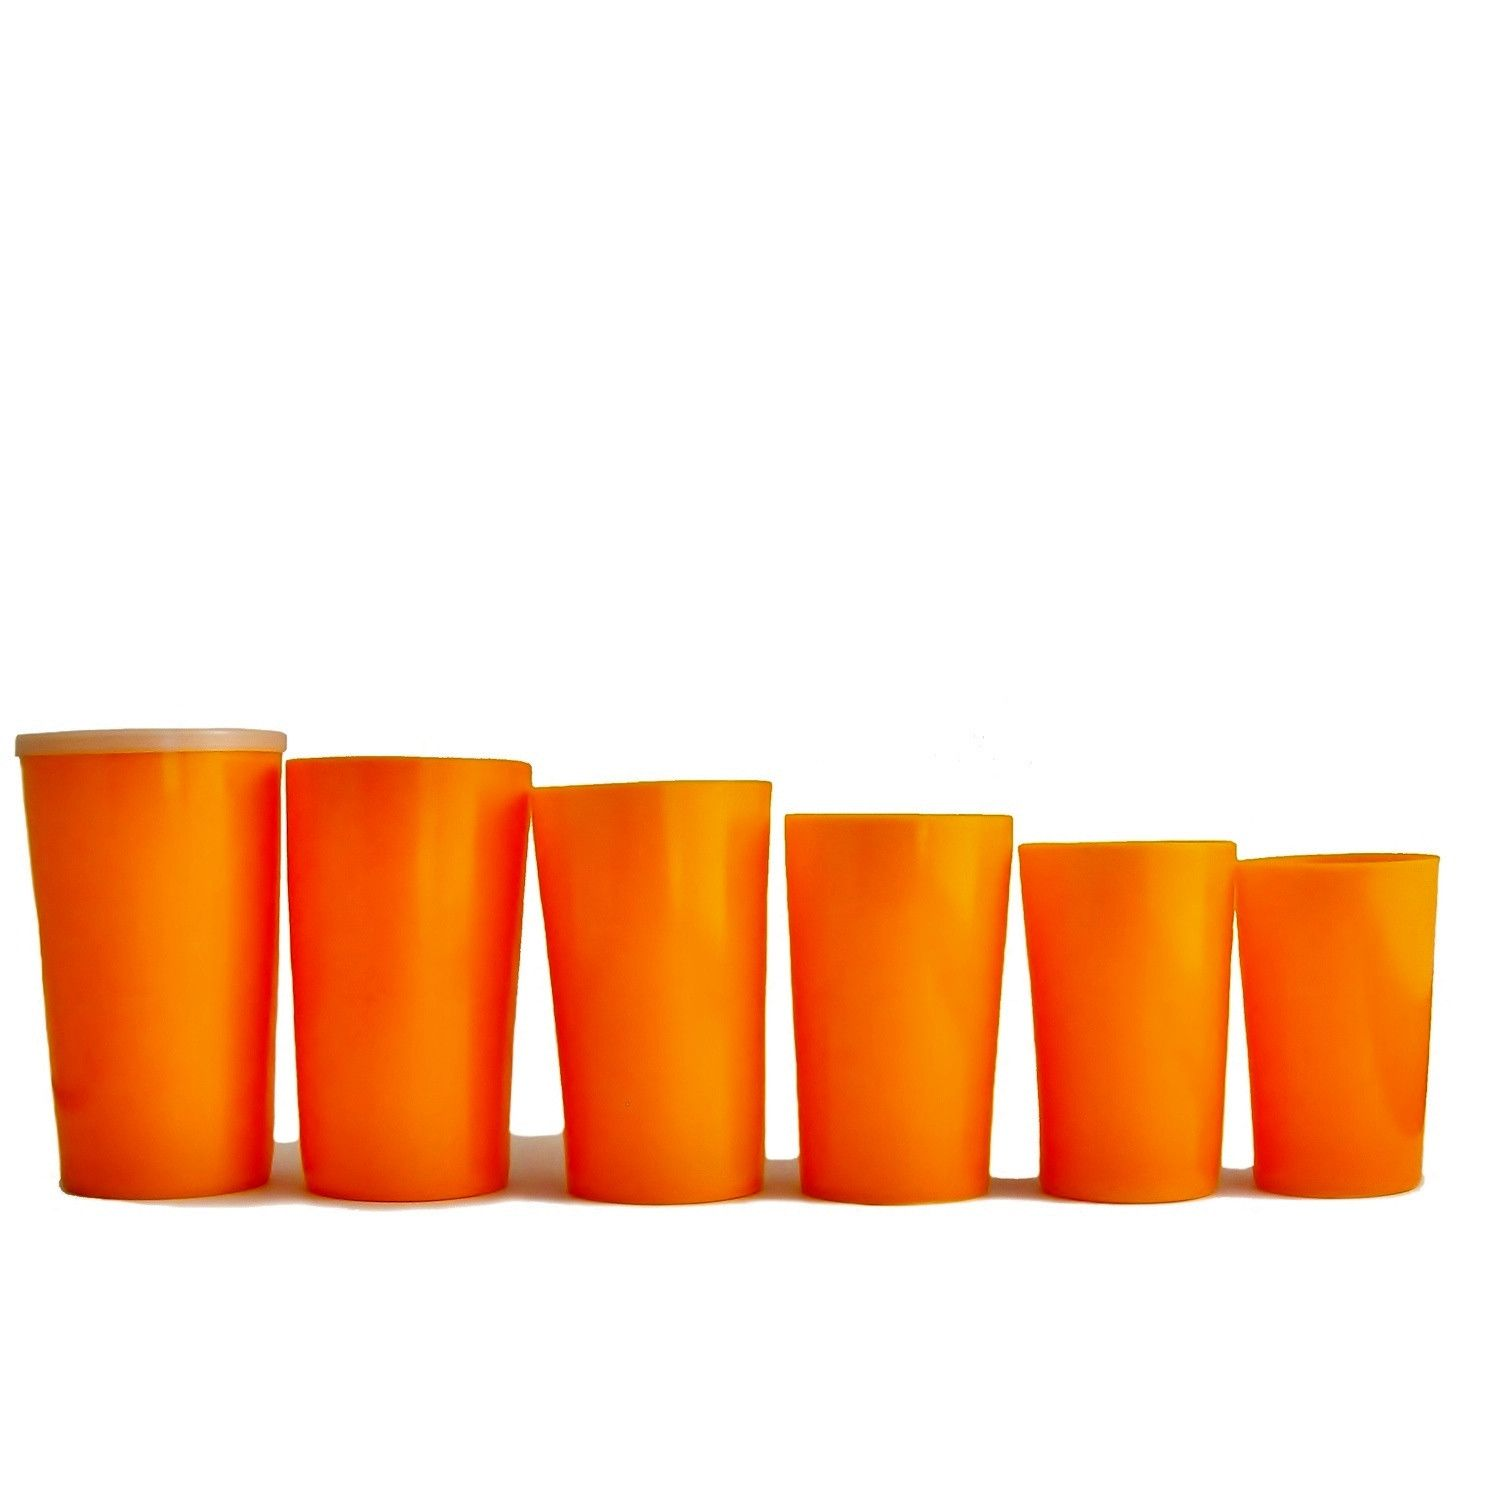 Six stacking cups great for camping or for folks on the go. Each tumbler is smaller than the next and conveniently nests inside the other, topped off with a handy dandy lid to keep things together.